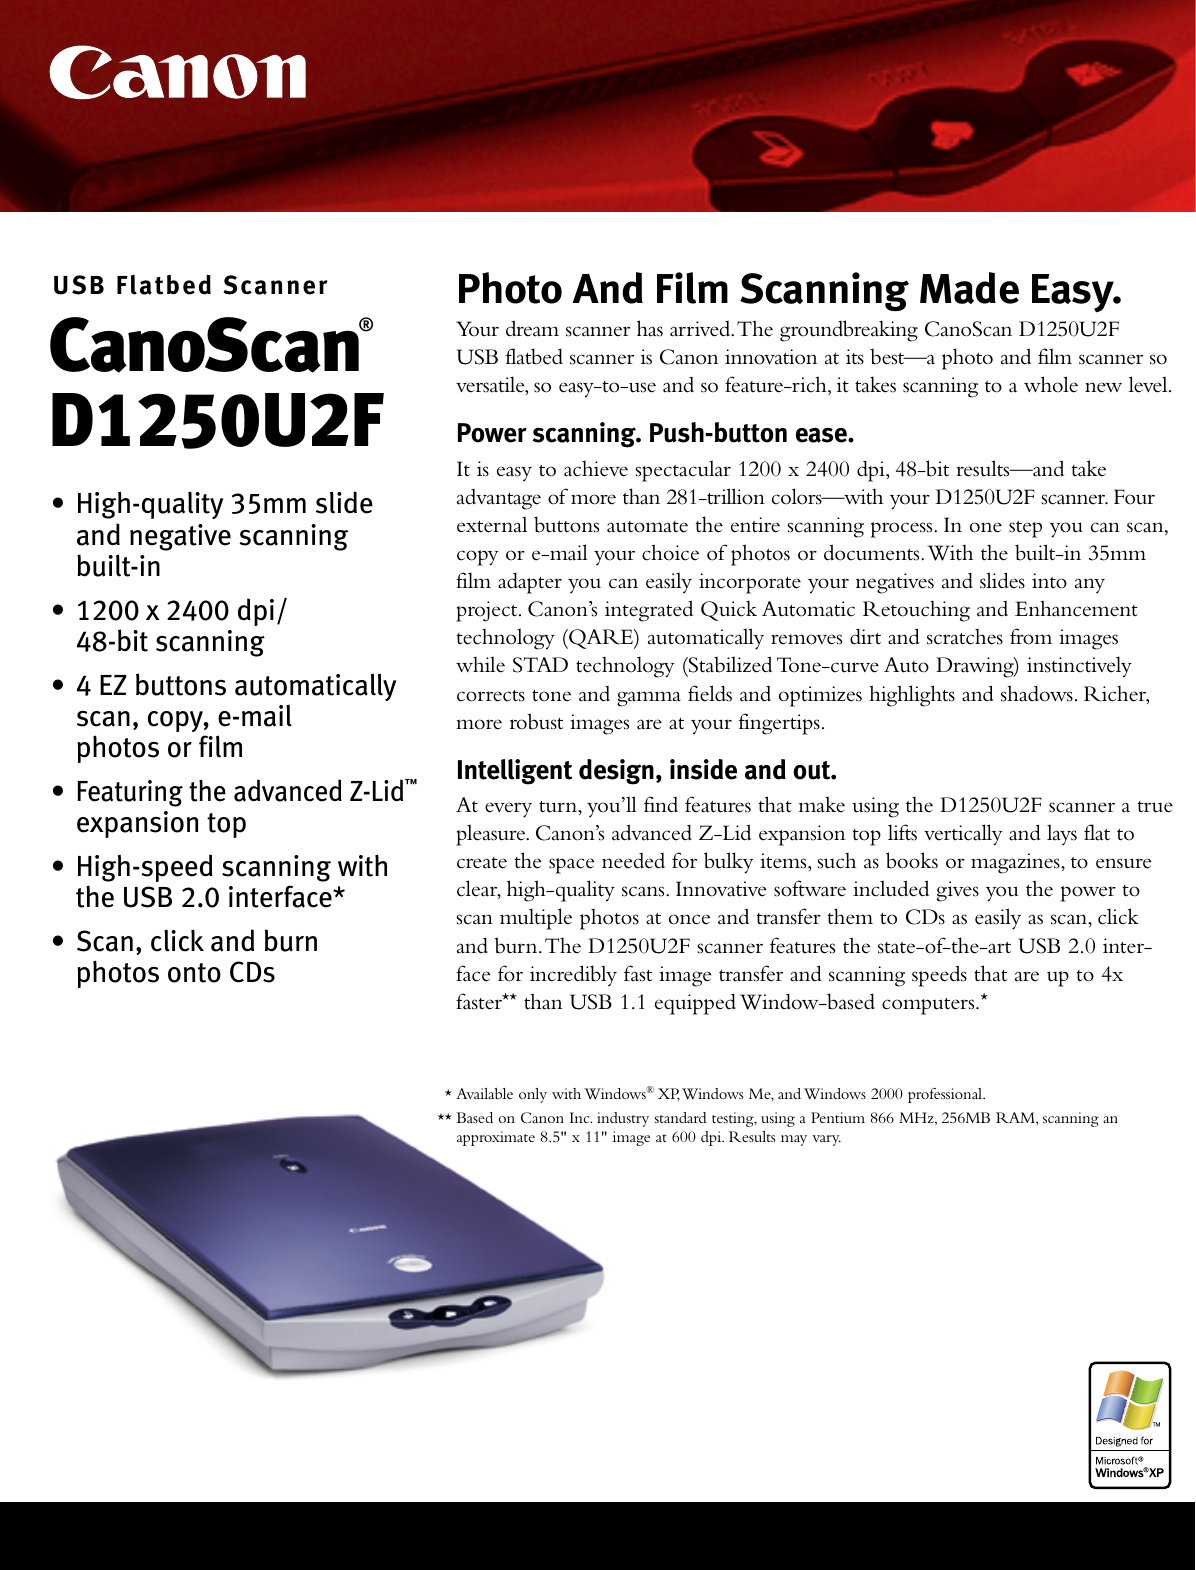 CANON CANOSCAN D1250U2F DRIVERS FOR MAC DOWNLOAD